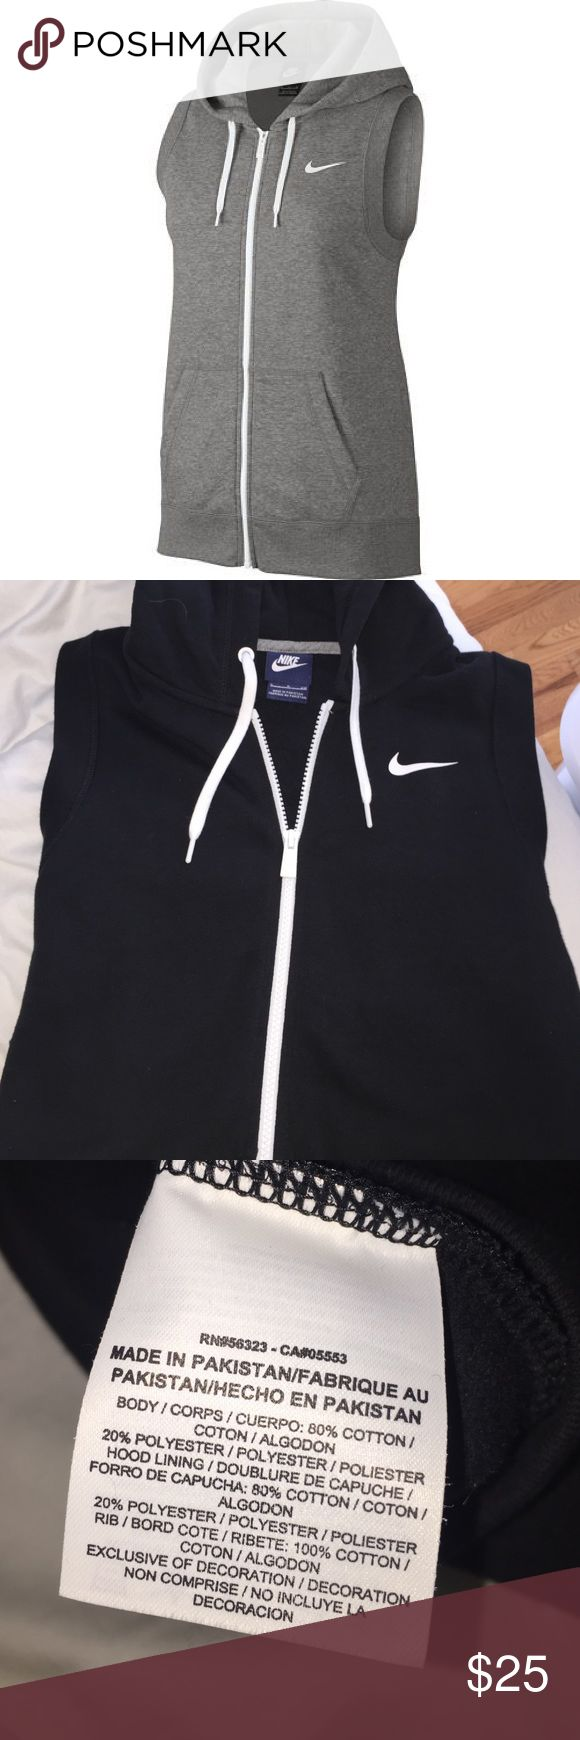 BLACK nike hooded vest Very soft hooded Nike vest in black. Perfect condition, worn once. Fits a small or medium. Offers welcomed! Nike Jackets & Coats Vests